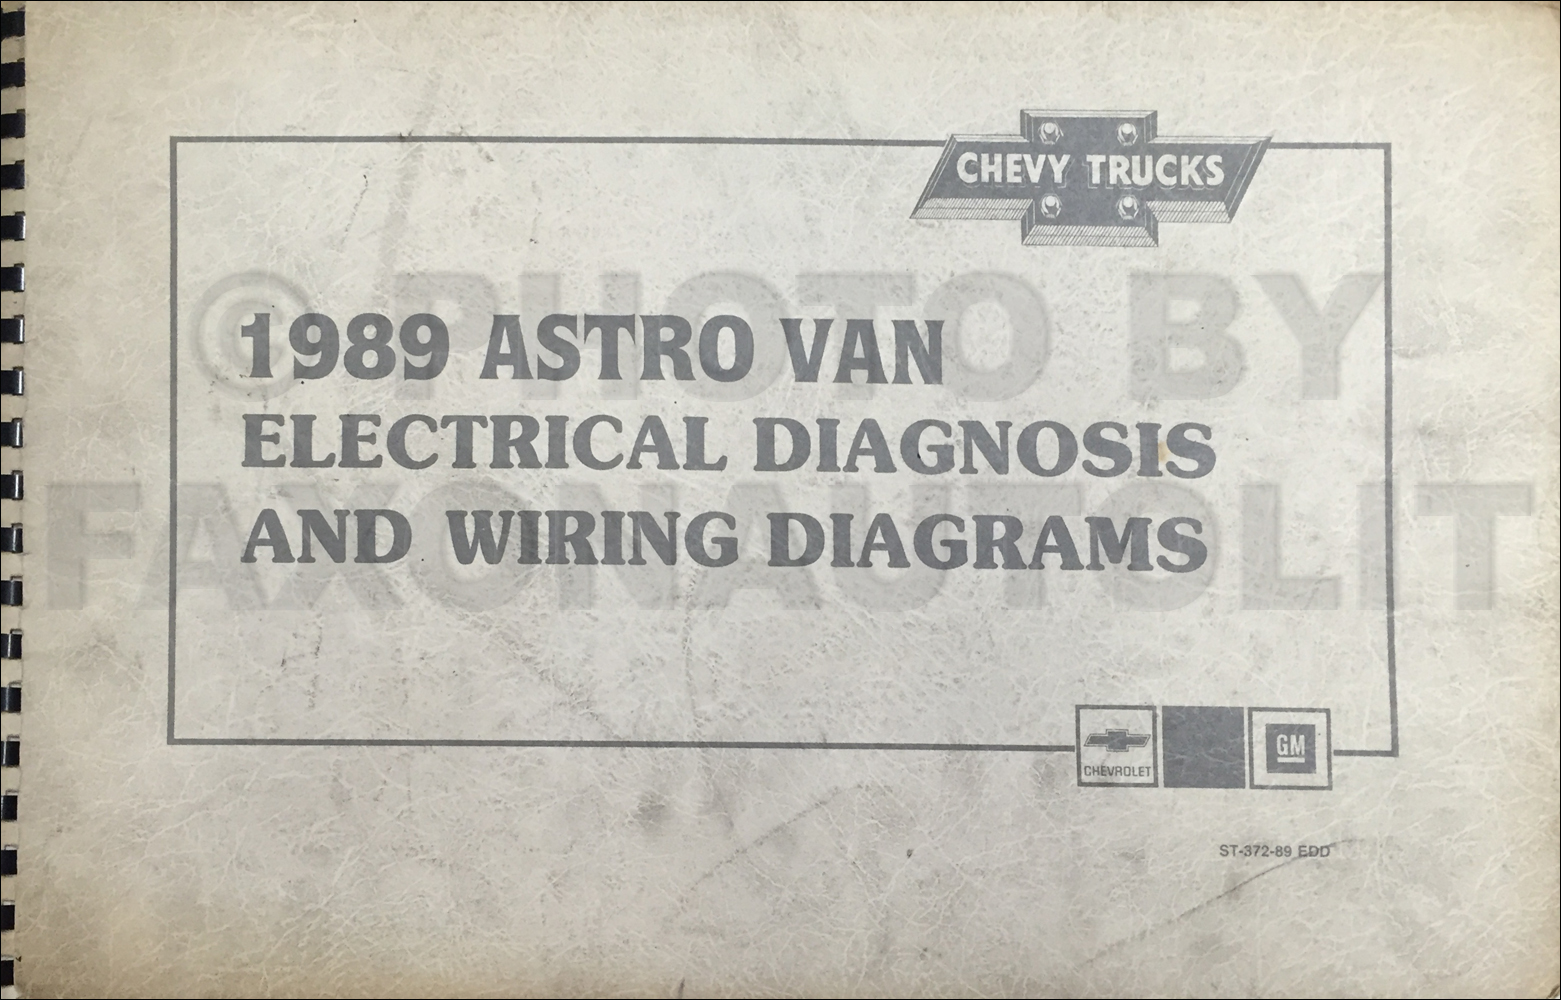 1989 Chevy Astro Van Wiring Diagram Manual Original